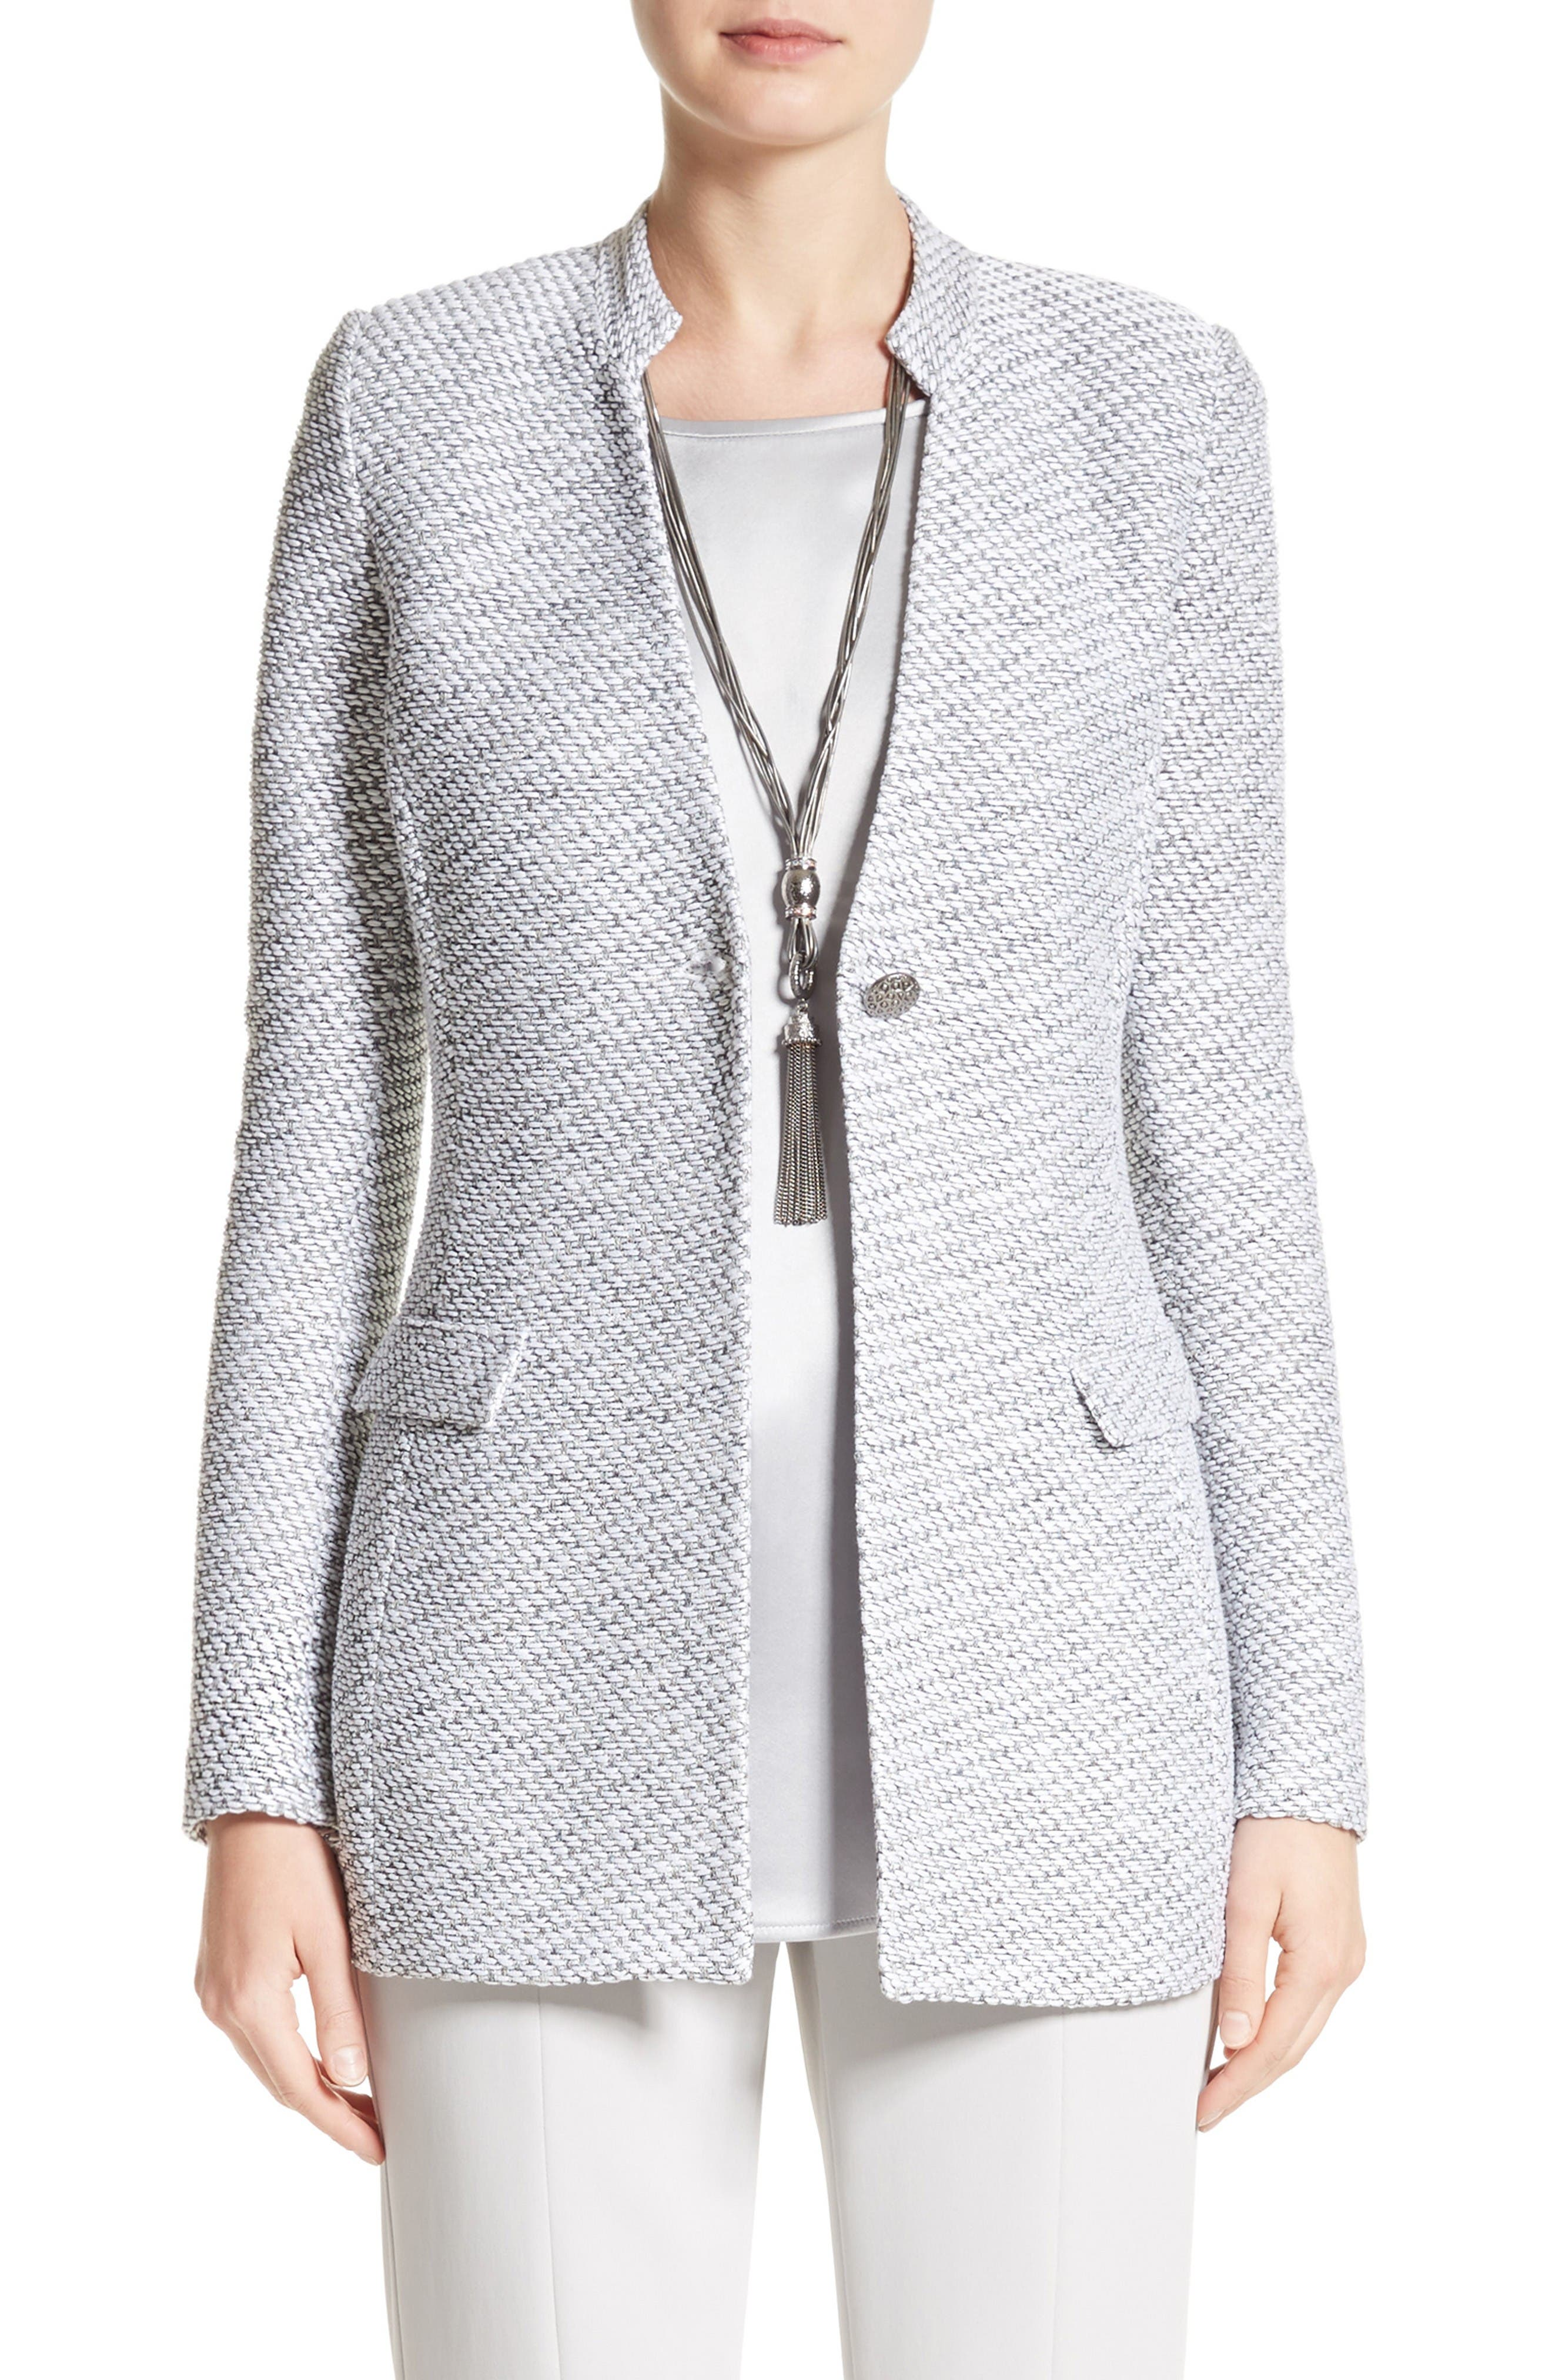 Gyan Knit Jacket,                             Main thumbnail 1, color,                             Bianco/ Mica Multi